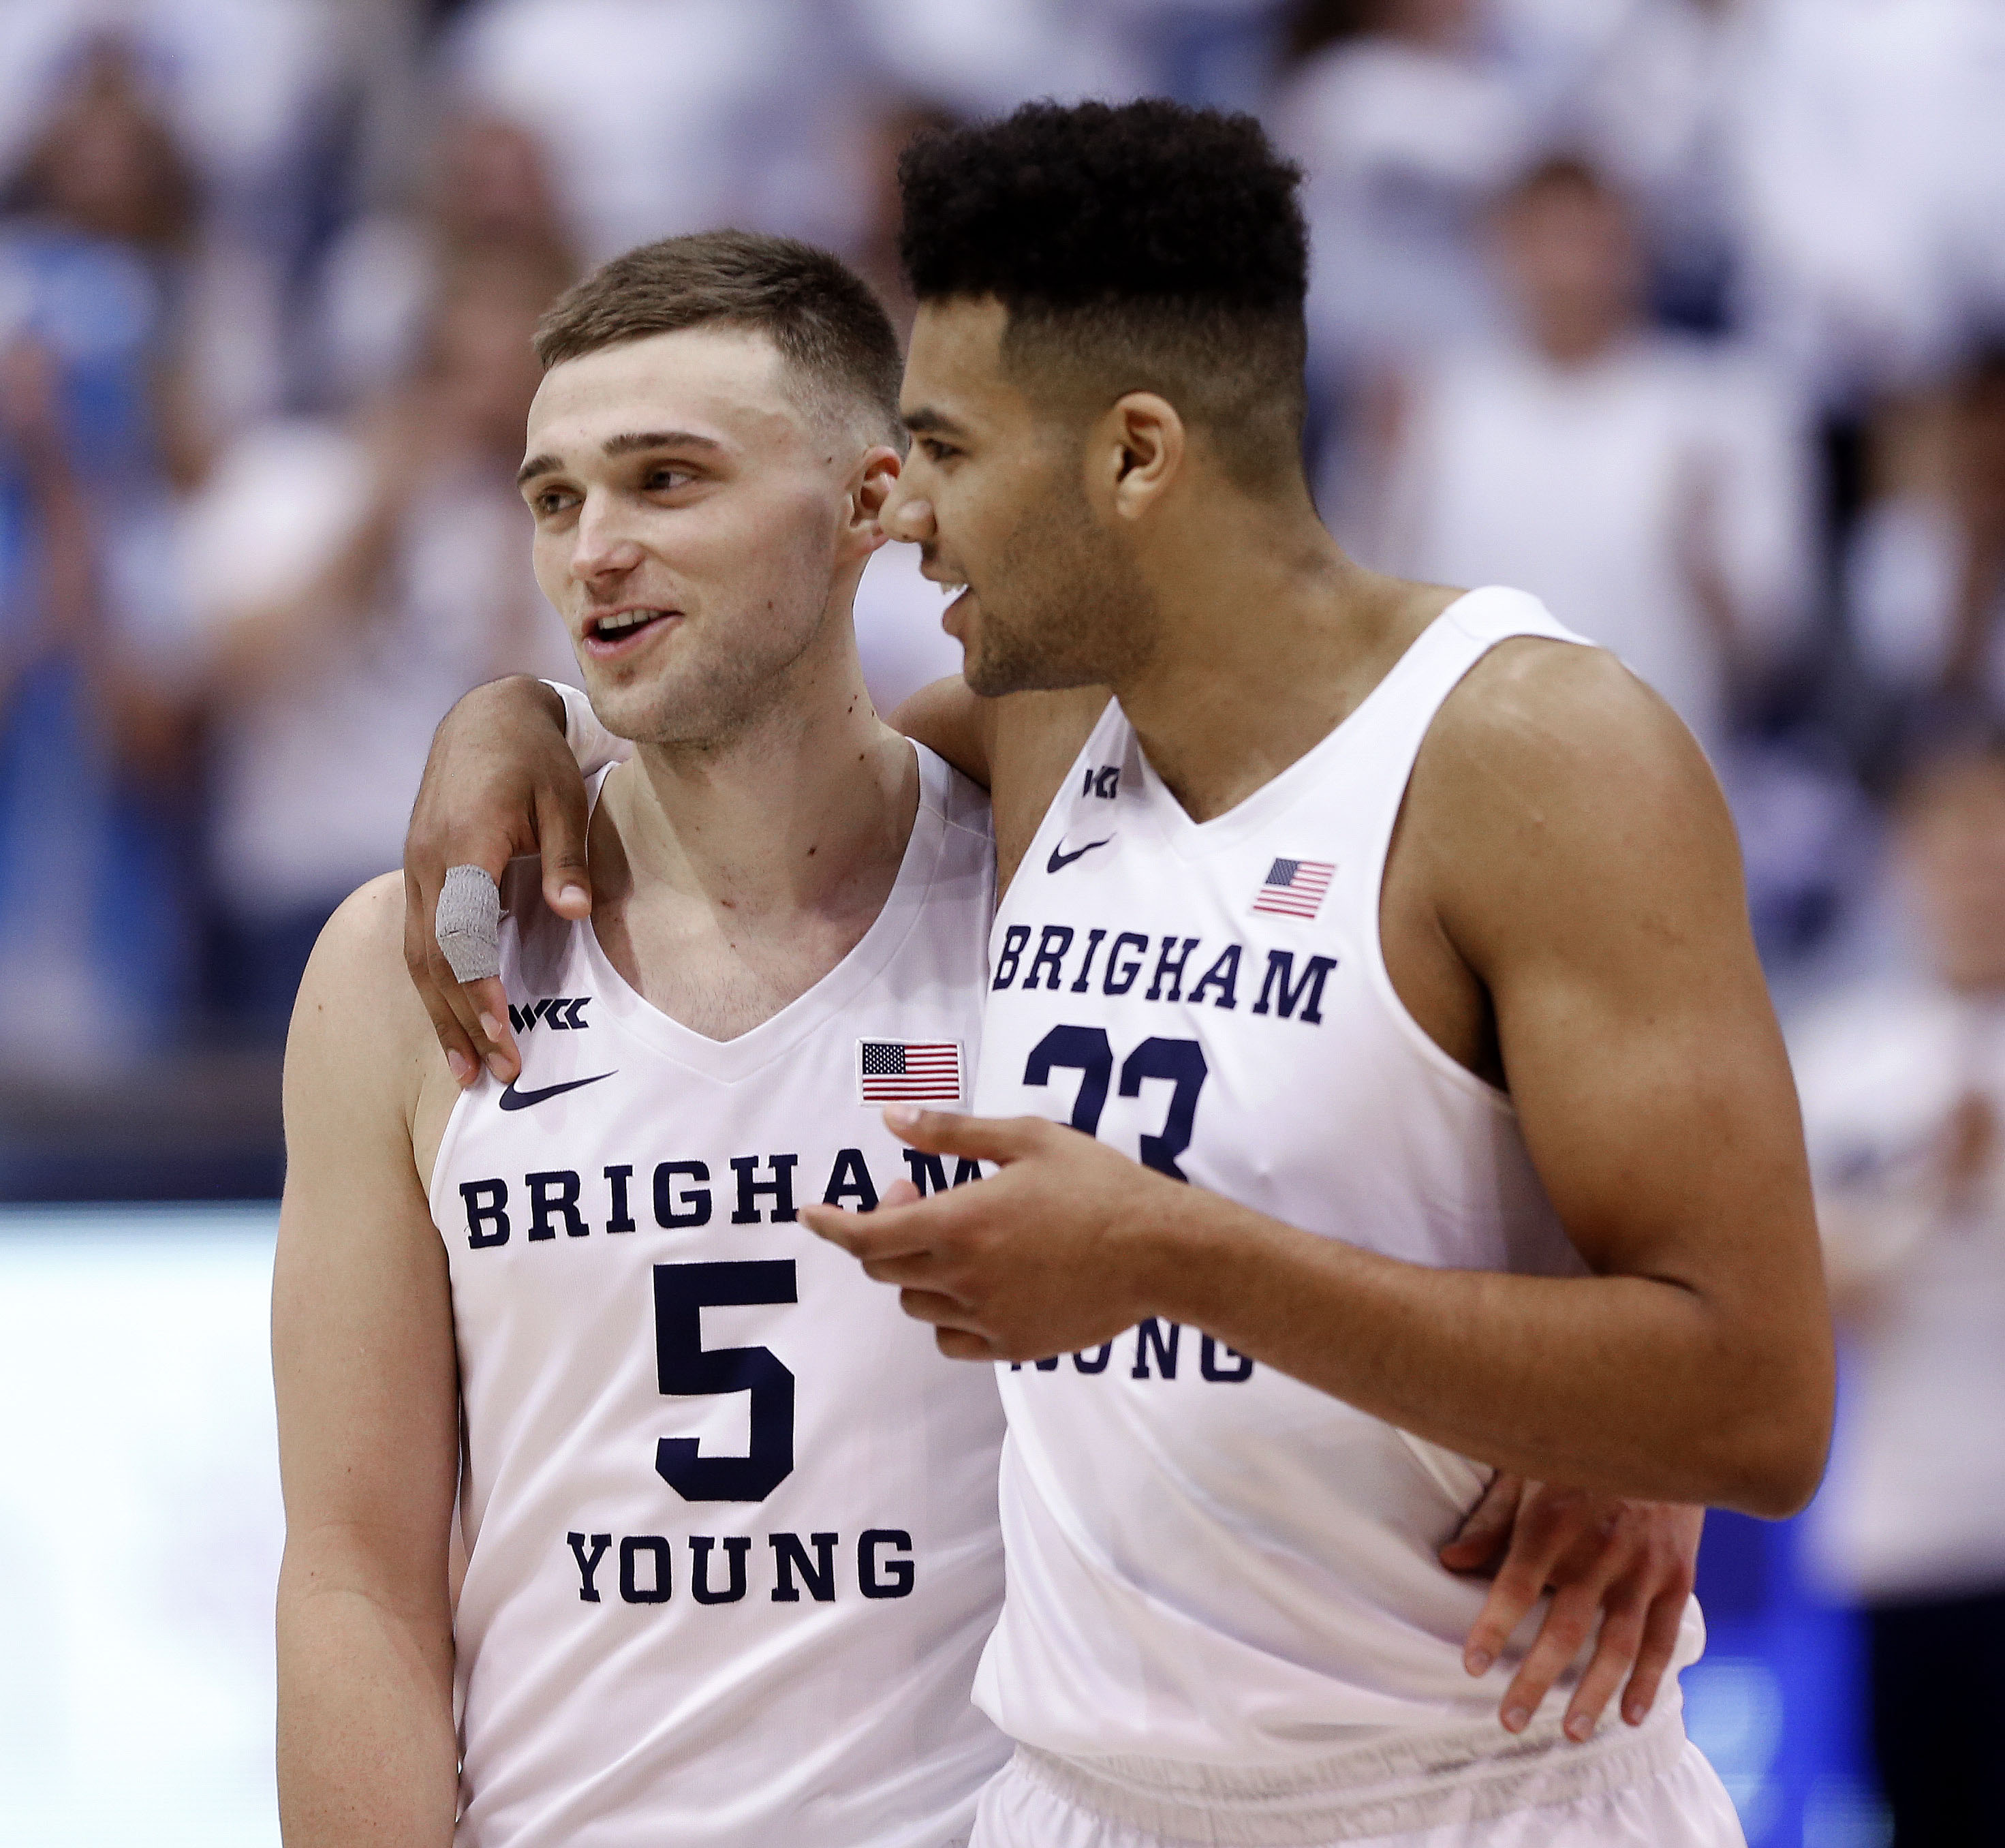 Brigham Young Cougars guard Jake Toolson (5) and forward Yoeli Childs (23) walk off the court after beating Santa Clara at Brigham Young University in Provo on Thursday, Feb. 20, 2020.